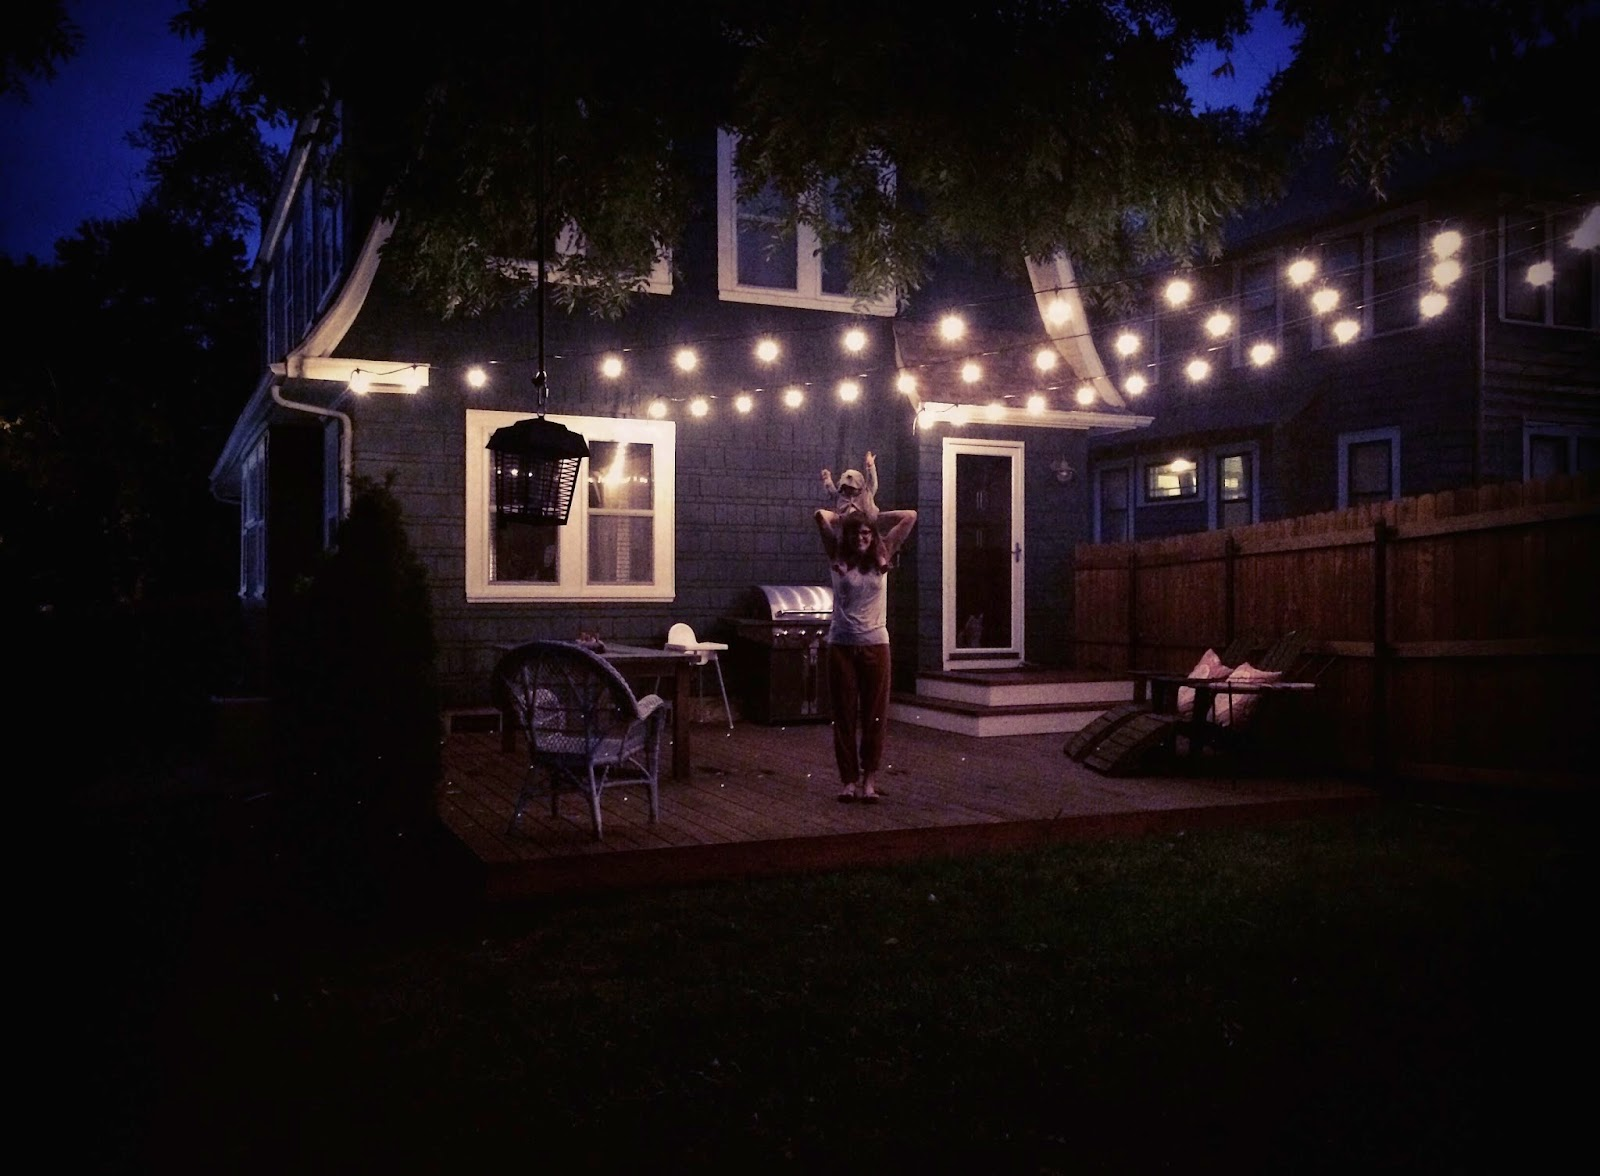 Installing Party Lights In Backyard